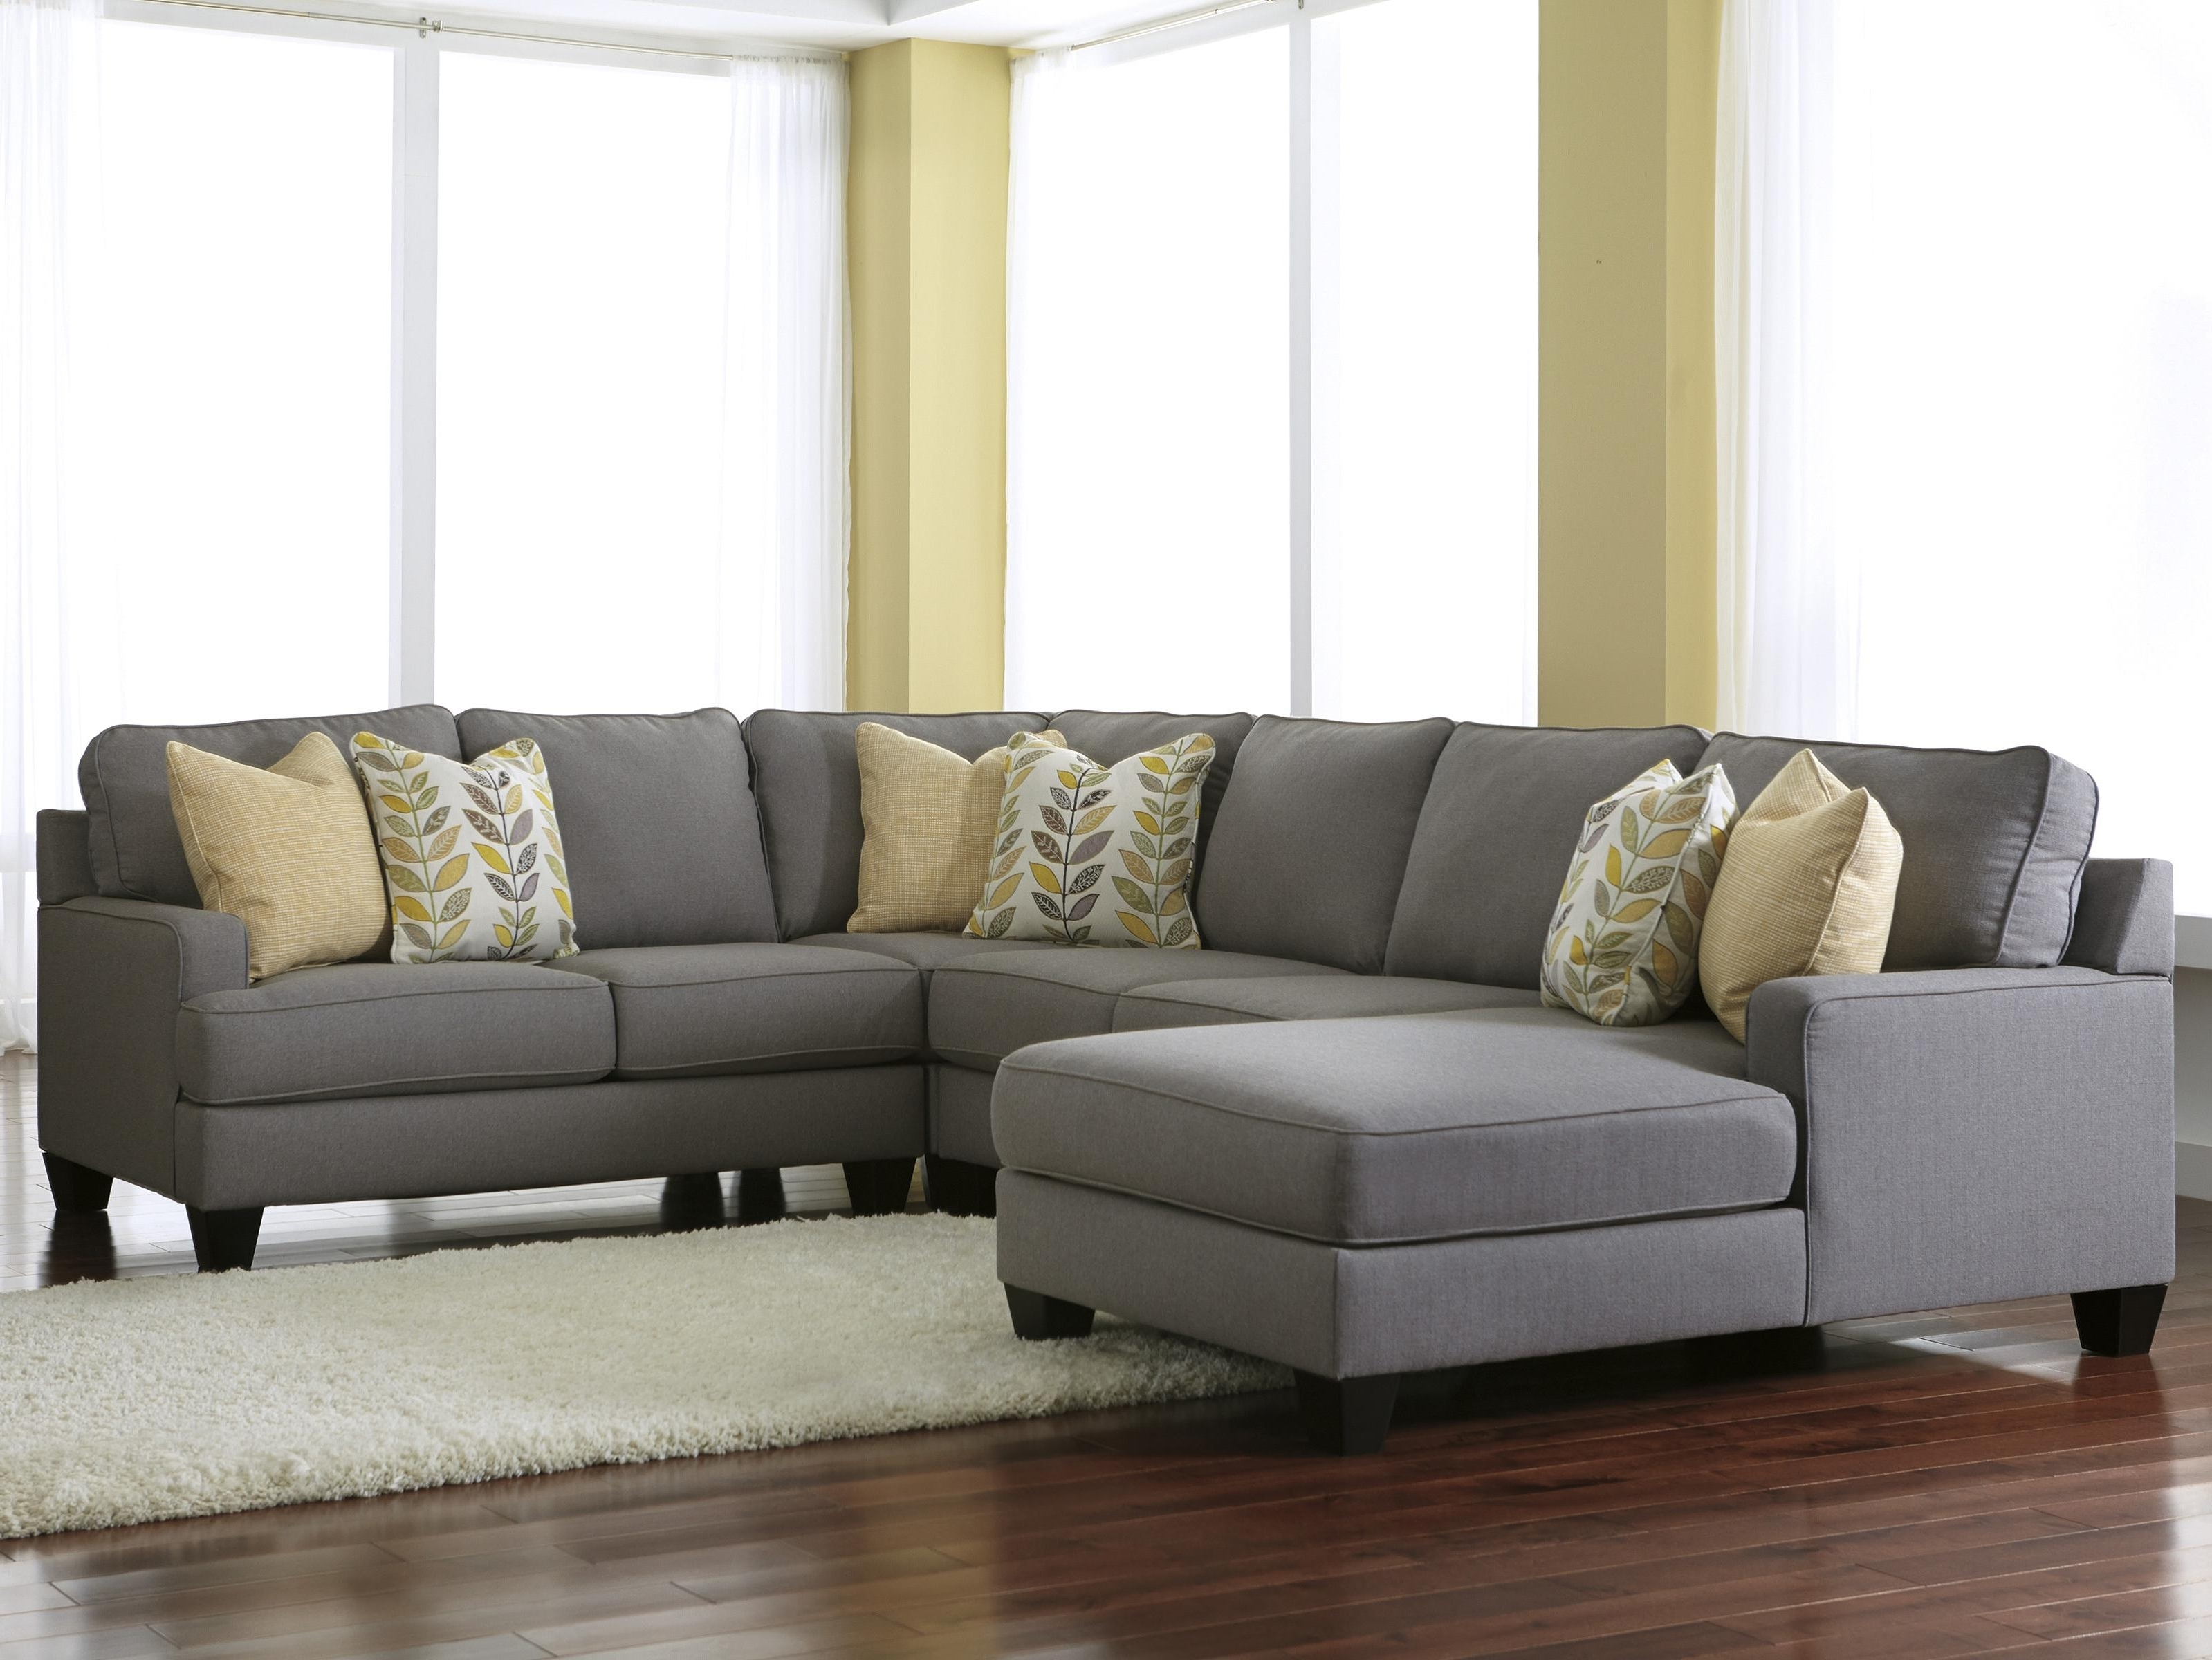 Modern 4 Piece Sectional Sofa With Left Chaise & Reversible Seat With Regard To Preferred Chaise Sofa Sectionals (View 5 of 15)